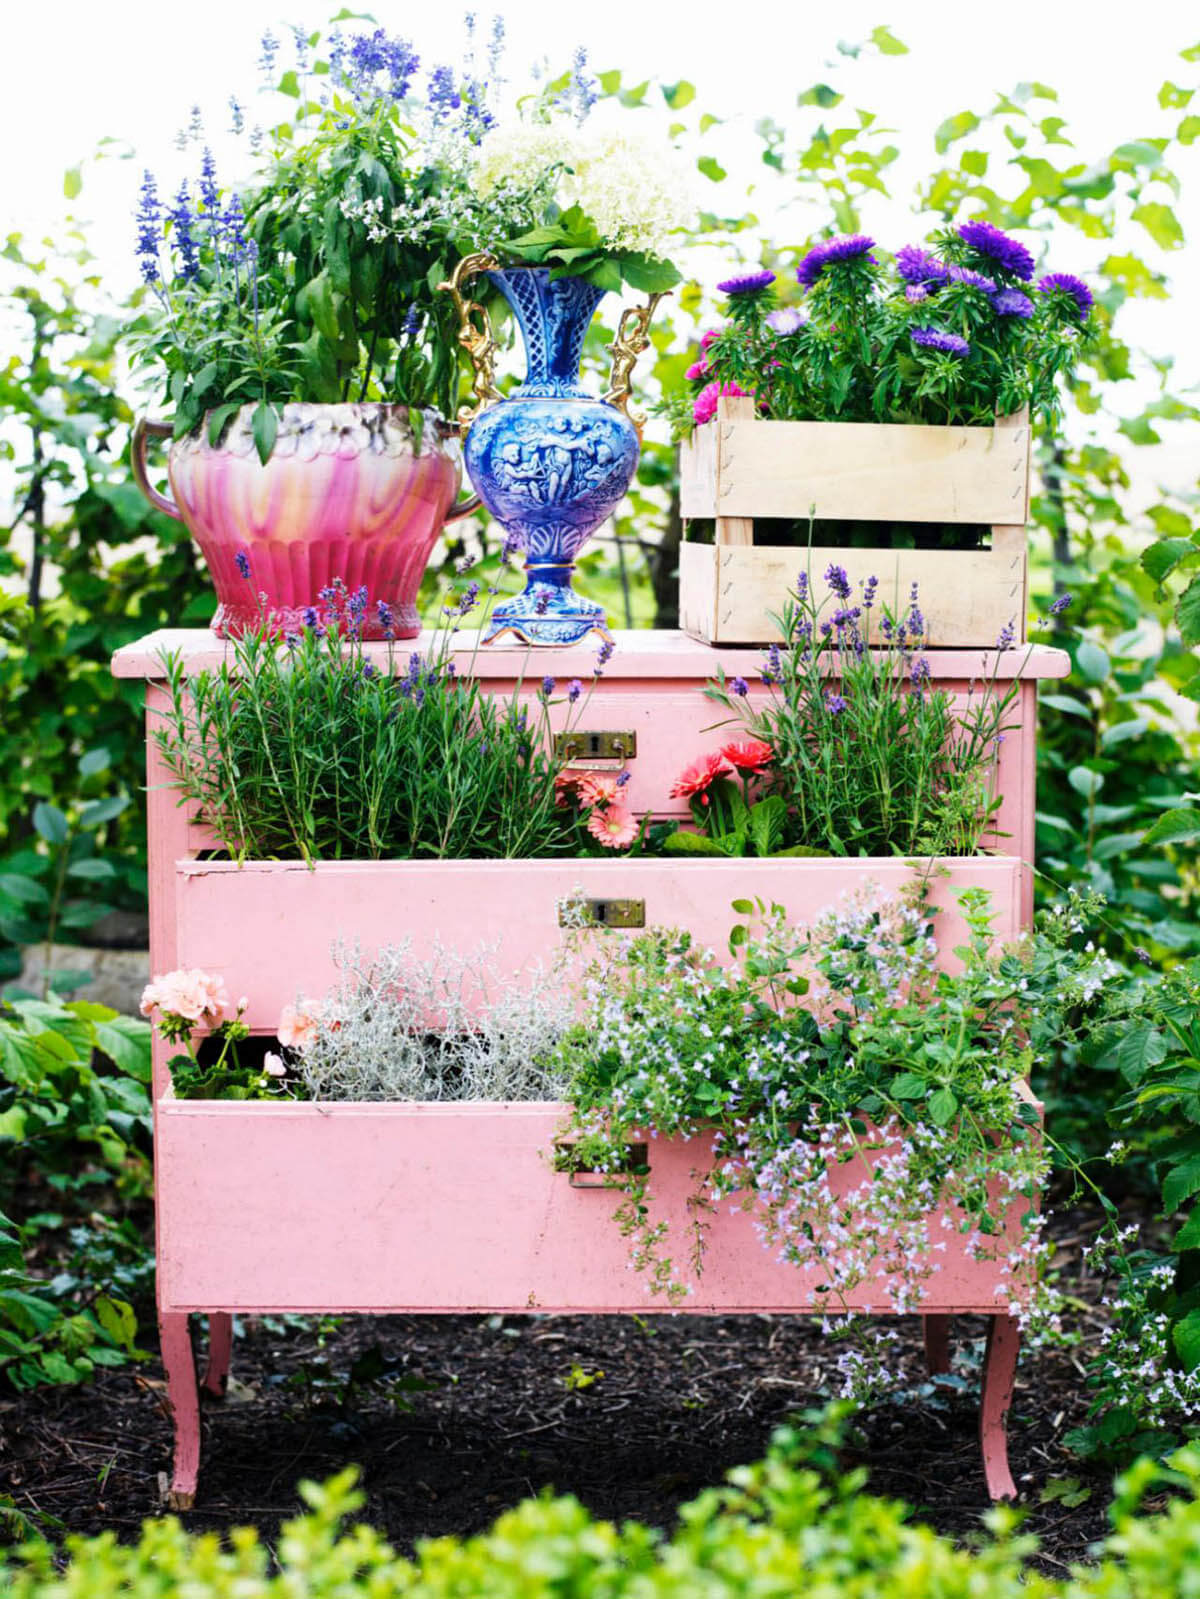 Merveilleux 39 Best Creative Garden Container Ideas And Designs For 2019